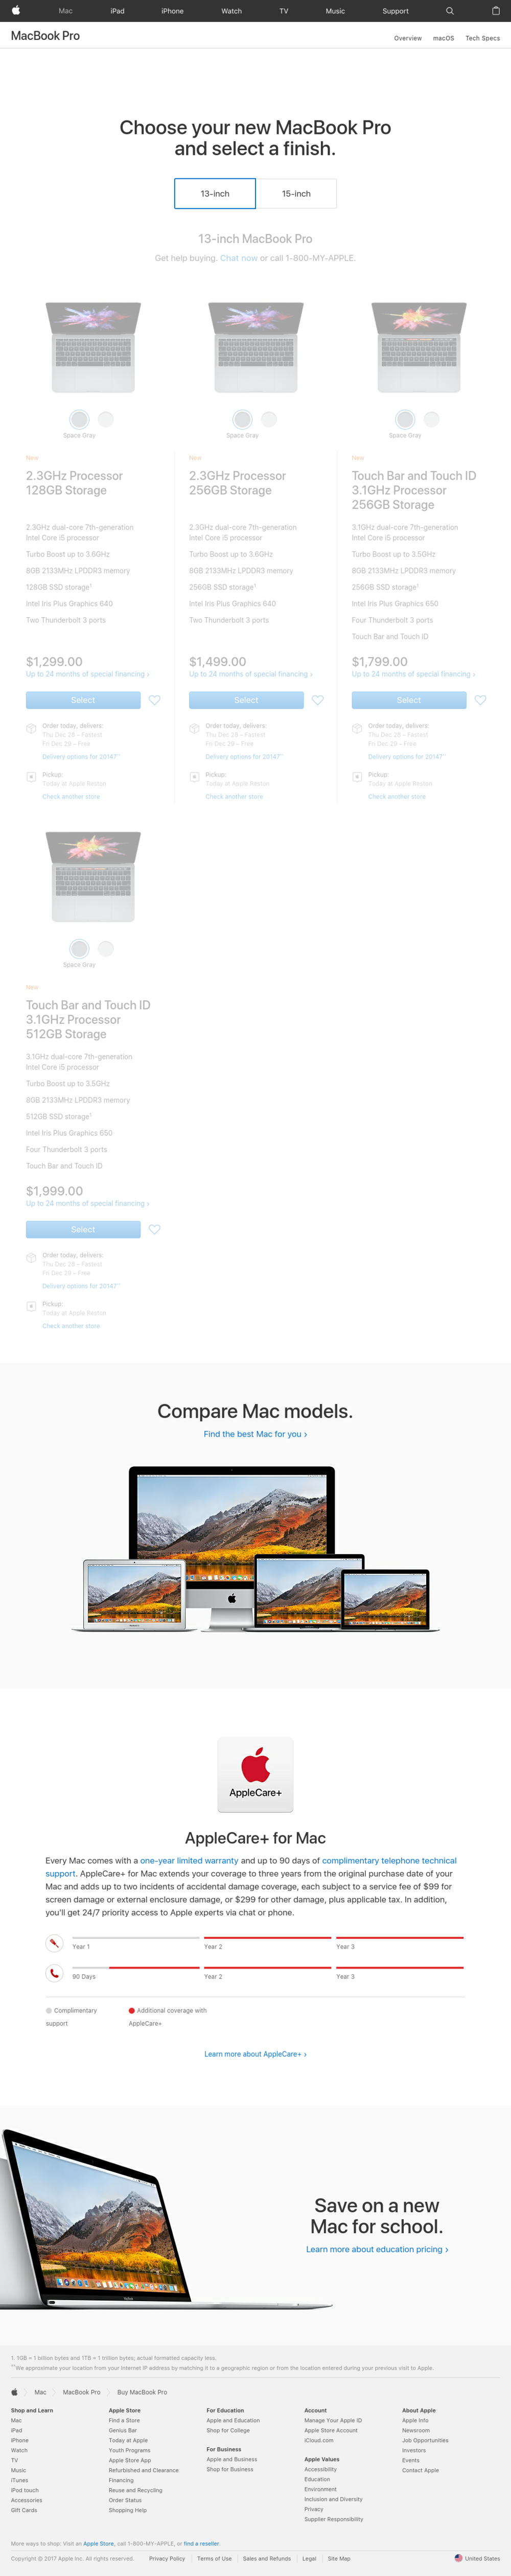 A screenshot taken of https://www.apple.com/shop/buy-mac/macbook-pro/13-inch on December 26, 2017. The Retina MacBook Pro is not listed.